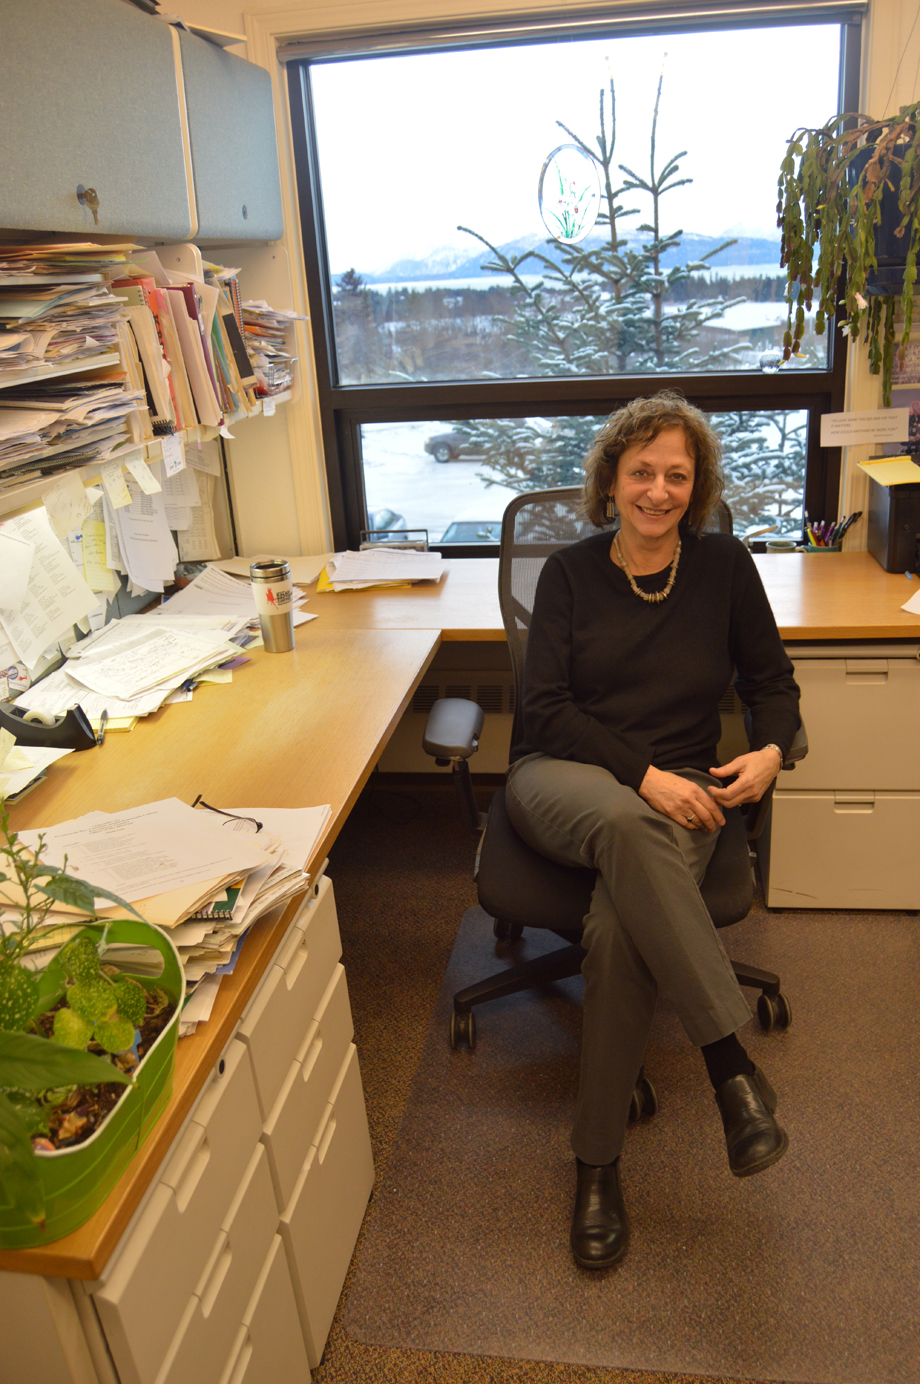 Kachemak Bay Campus Director Carol Swartz takes a break in a busy day to talk about her work. Swartz recently was honored by the Alaska Adult Education Association for her outstanding long-term contribution to lifelong learning.-Photo by Annie Rosenthal, Homer News